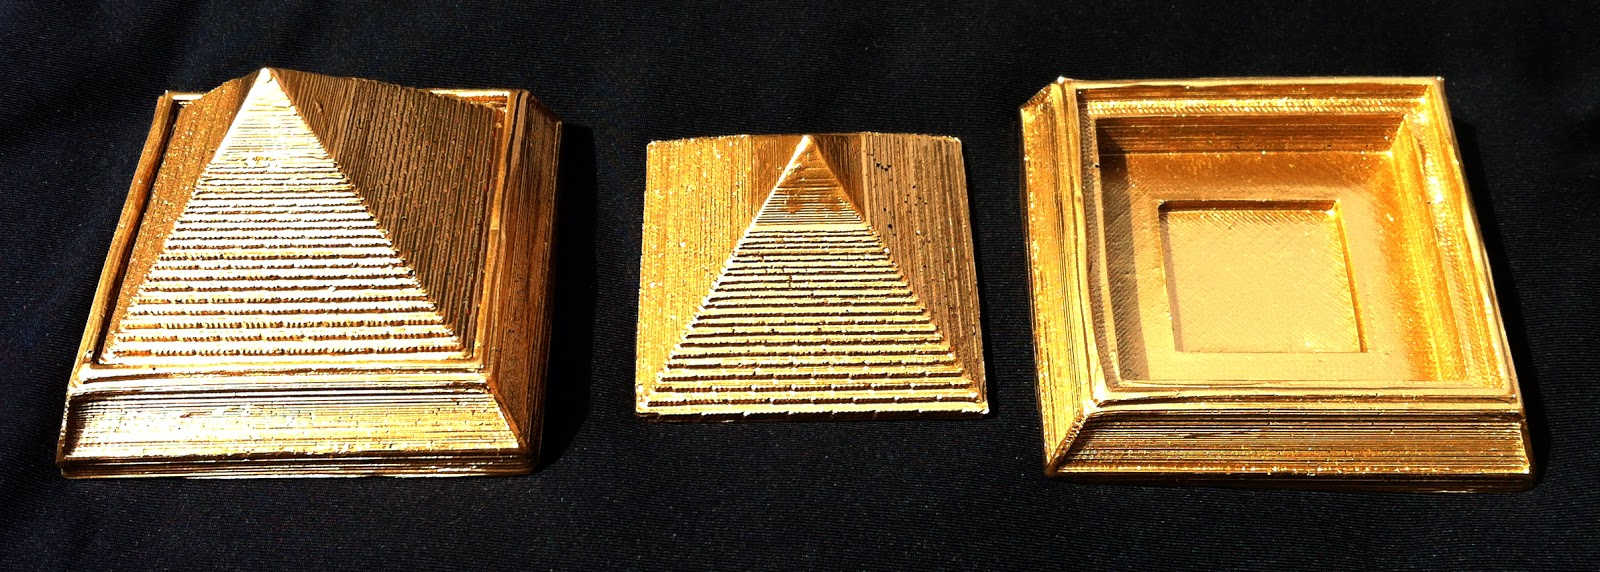 Pyramid keepers top and bottom